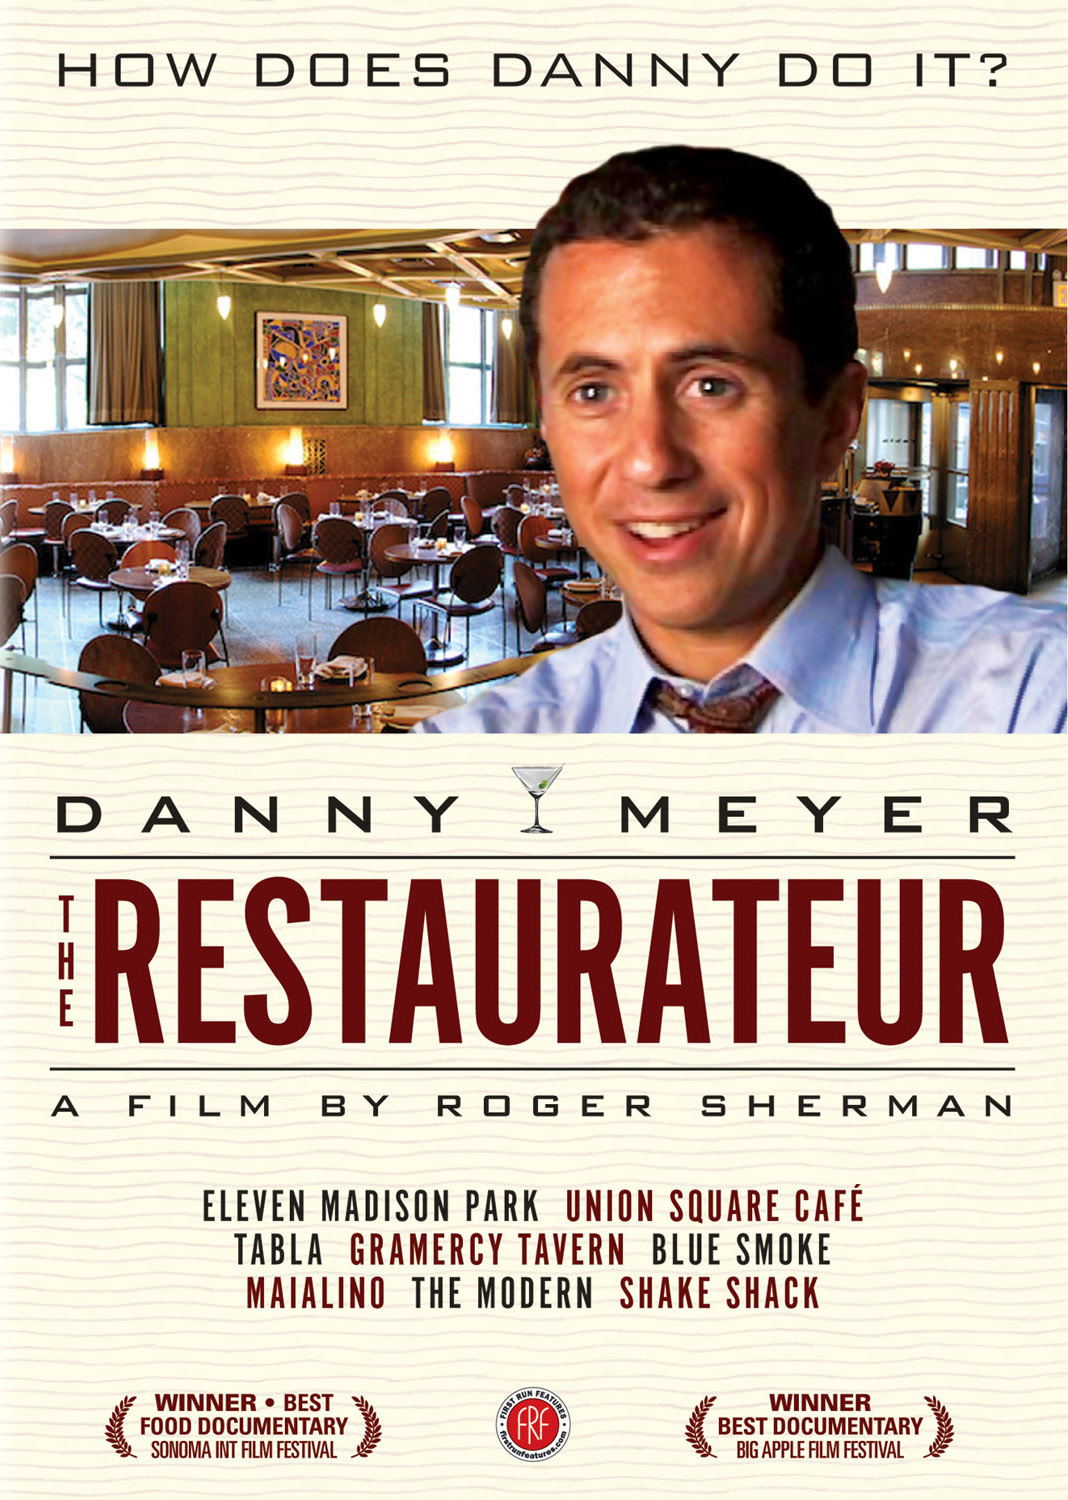 225_restaurateur.jpg The Restaurateur Danny Meyer  sc 1 st  First Run Features & The Restaurateur: Danny Meyer